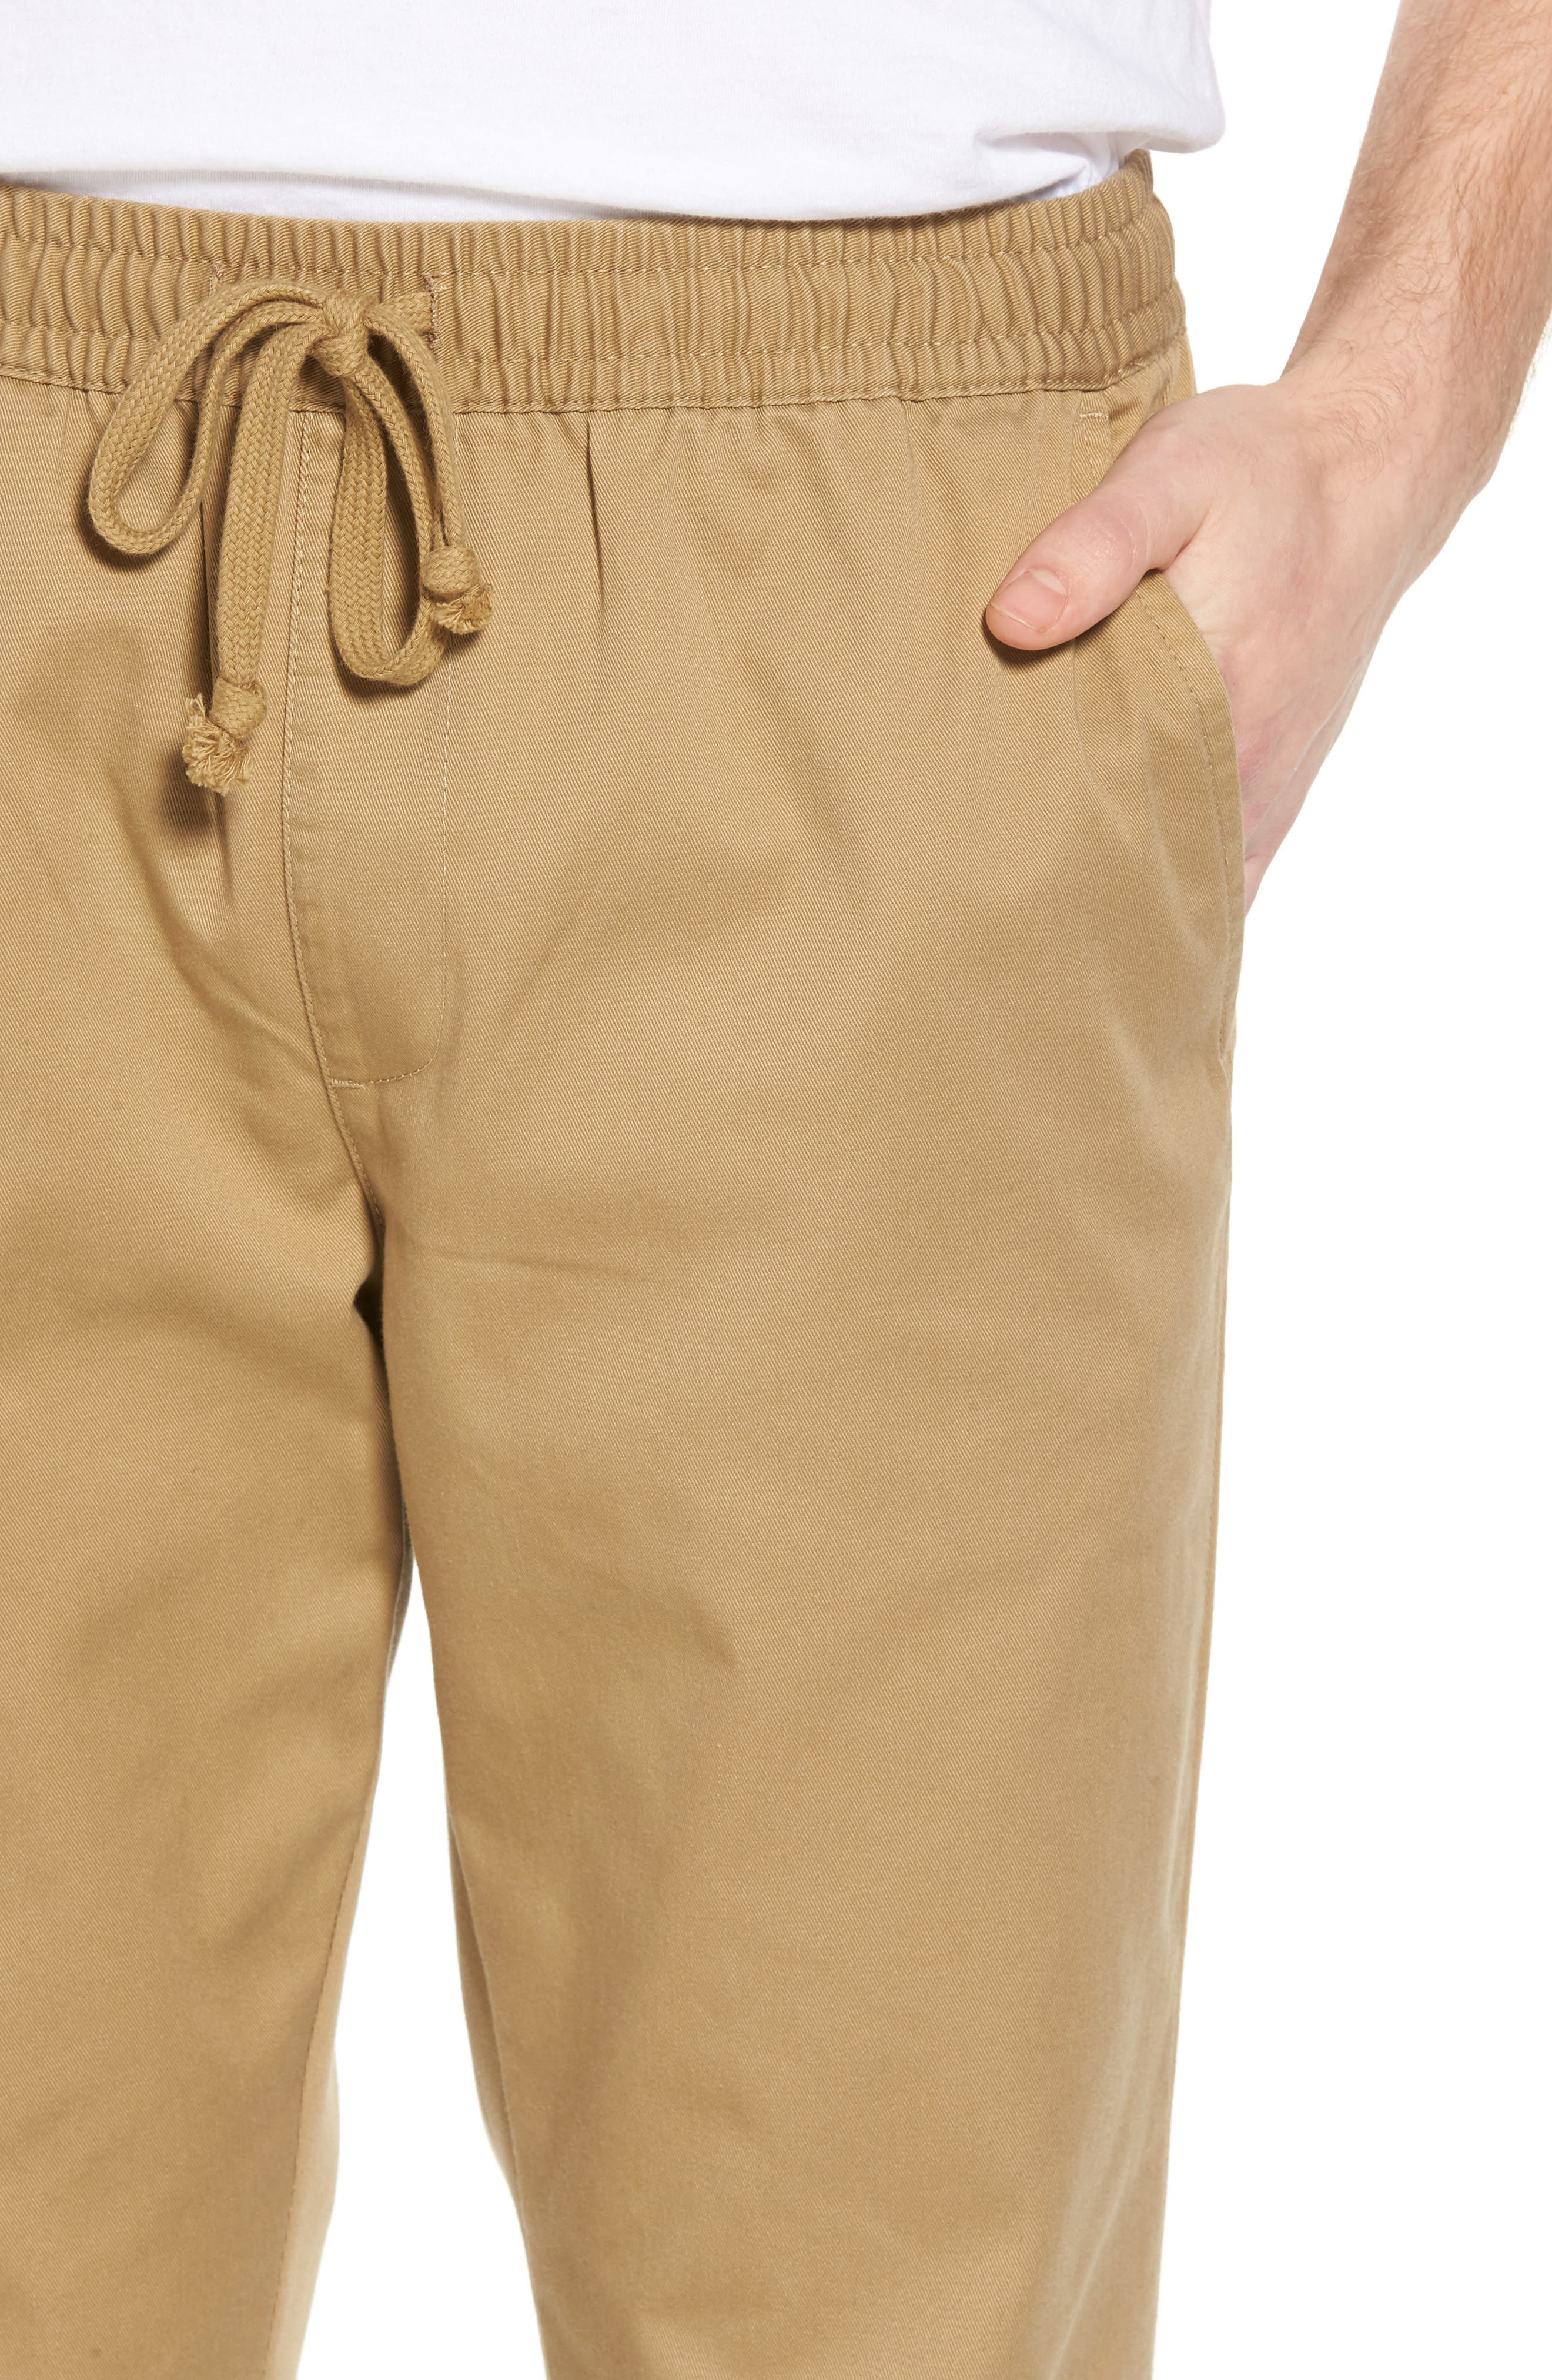 A.T. Dayshift Pants,                             Alternate thumbnail 4, color,                             Dark Sand